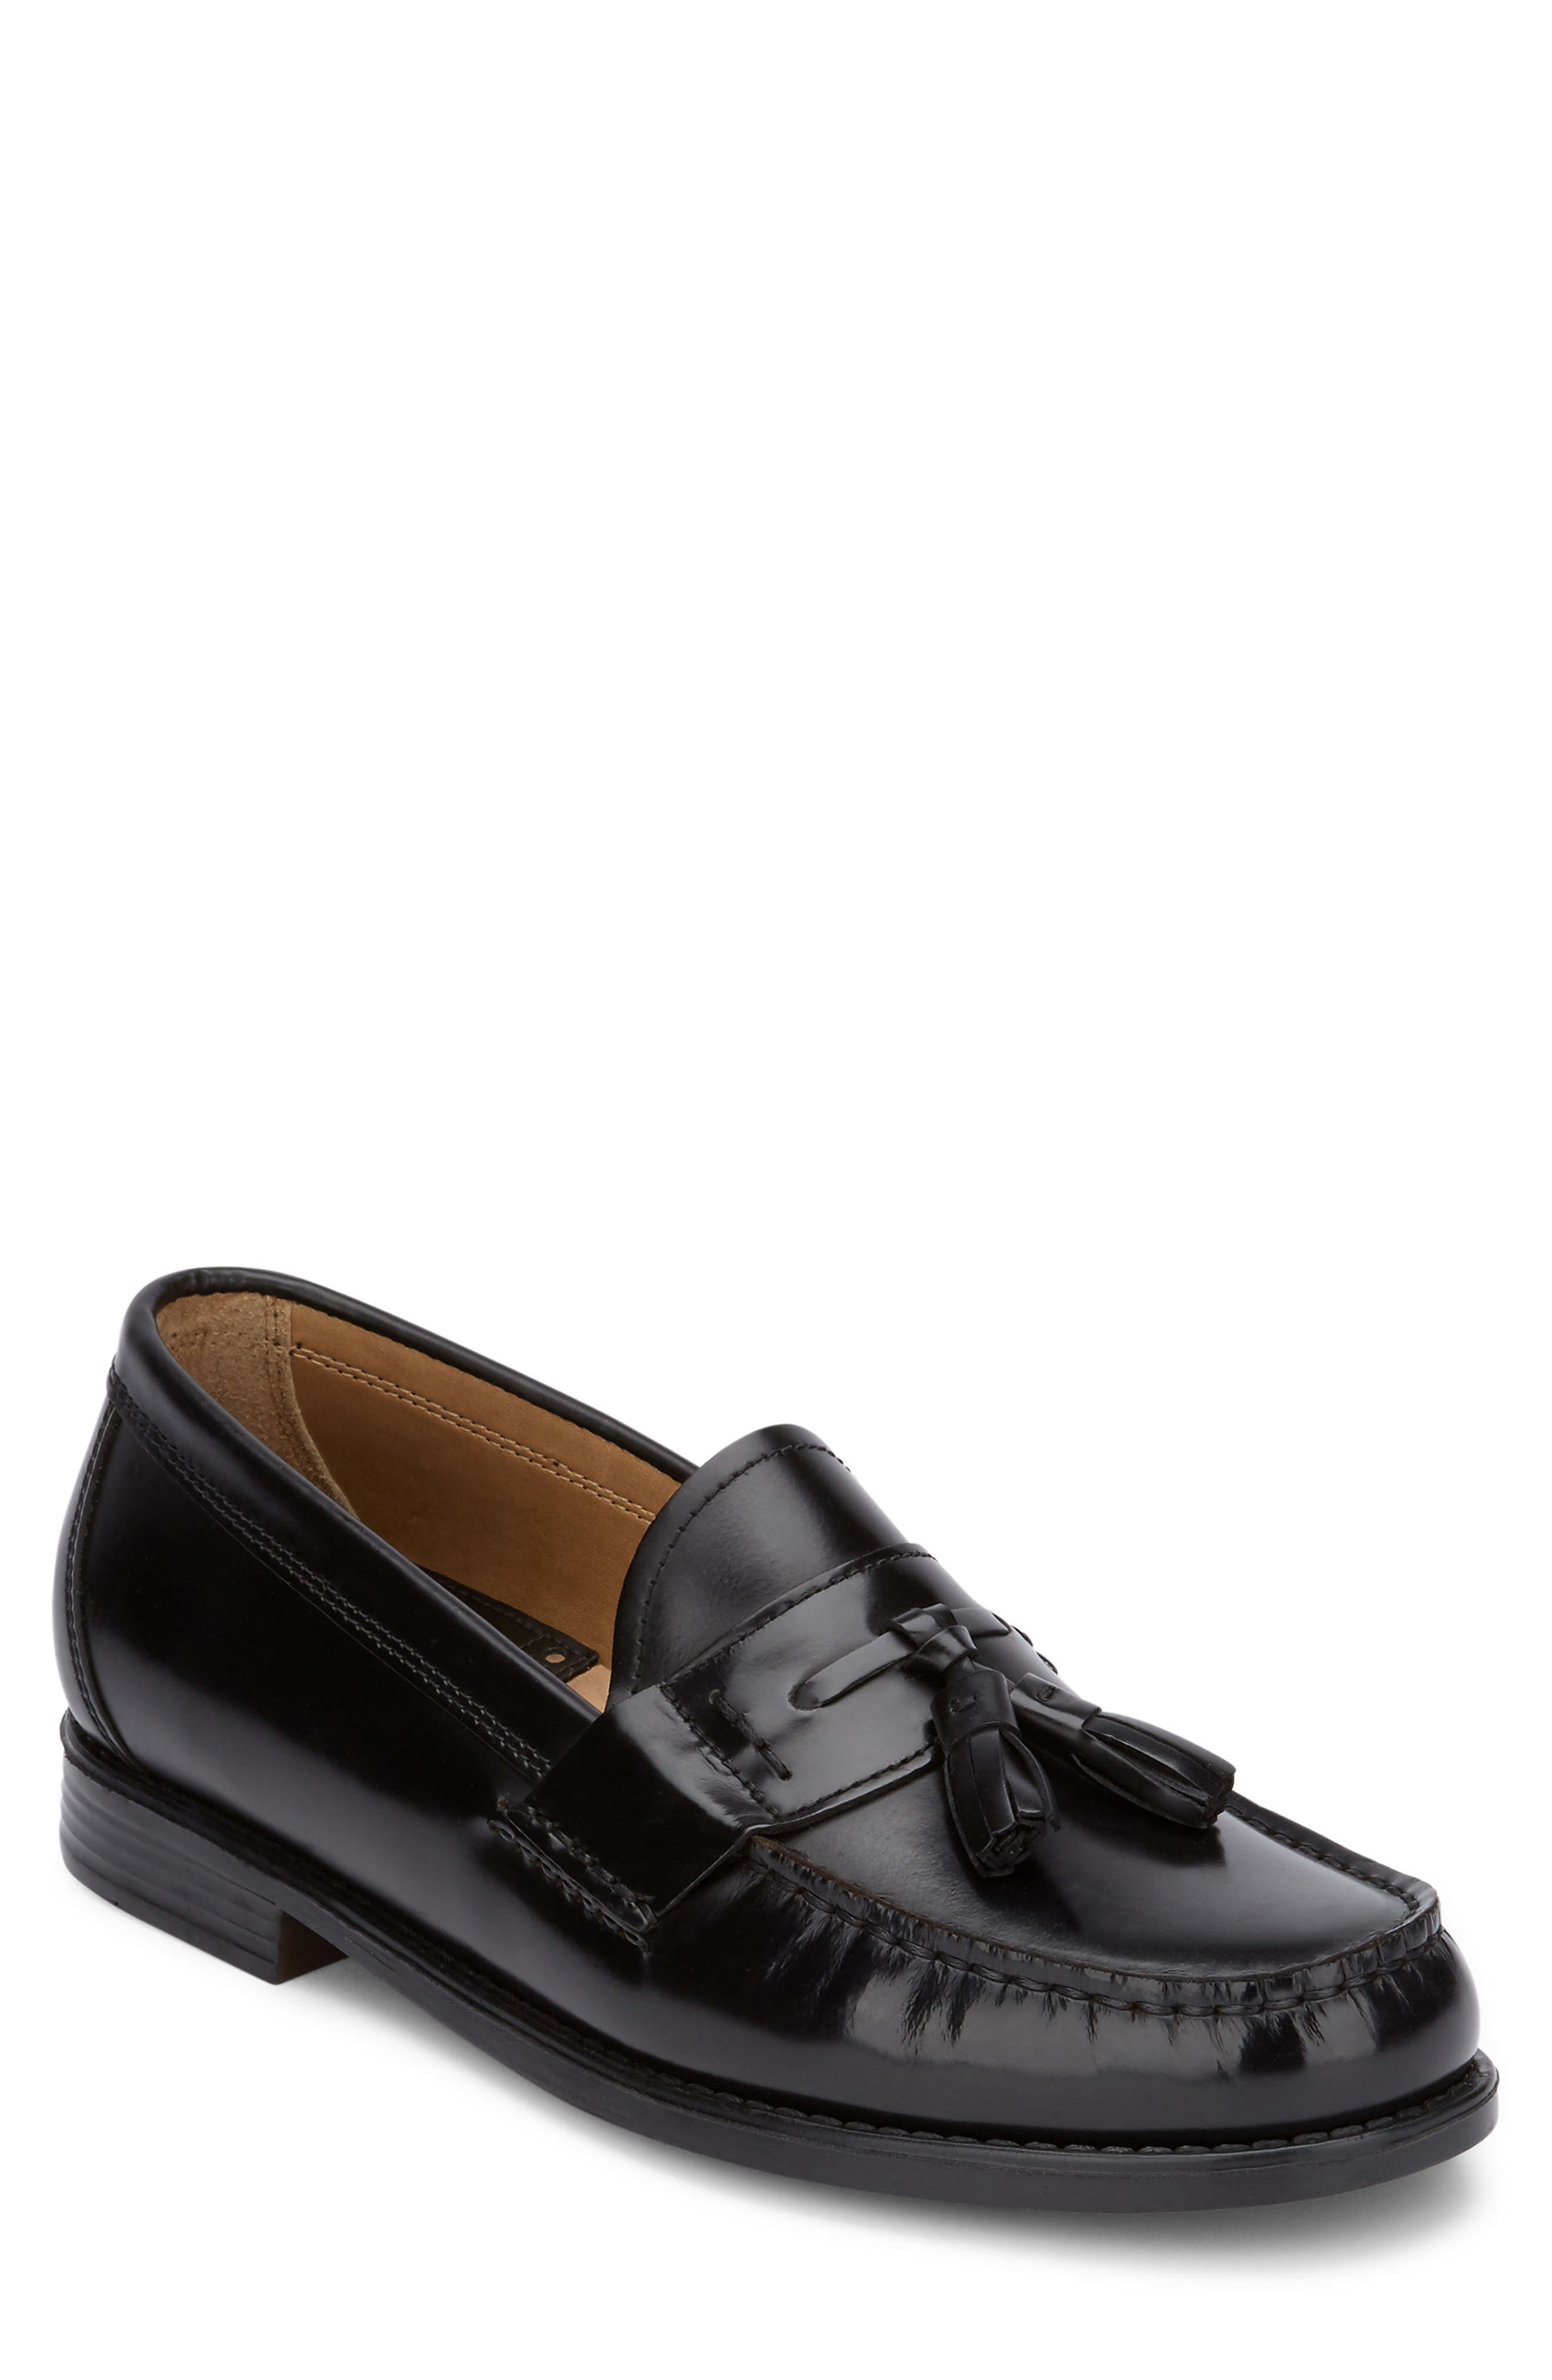 Alternate Image 1 Selected - G.H. Bass & Co. Wallace Tassel Loafer (Men)